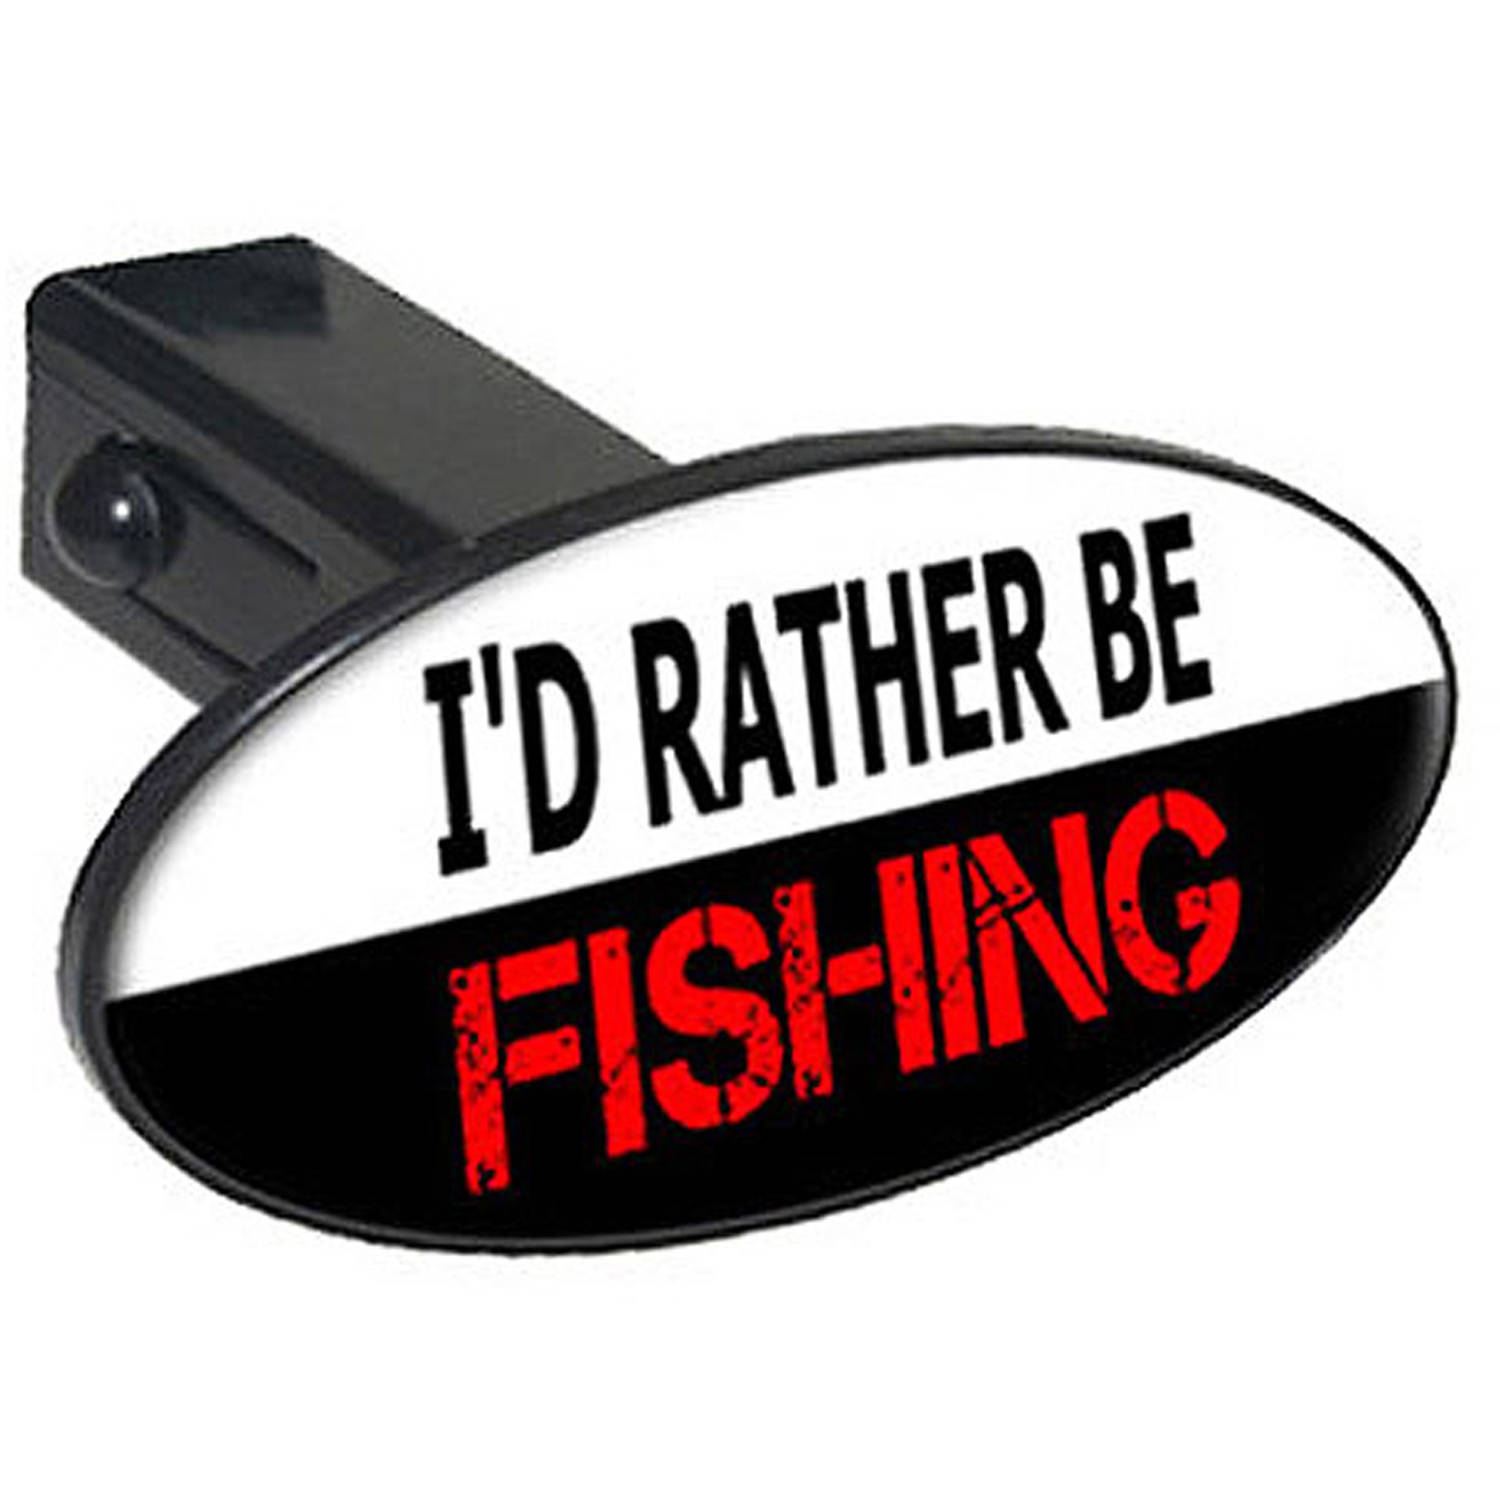 "I'd Rather Be Fishing 1.25"" Oval Tow Trailer Hitch Cover Plug Insert"